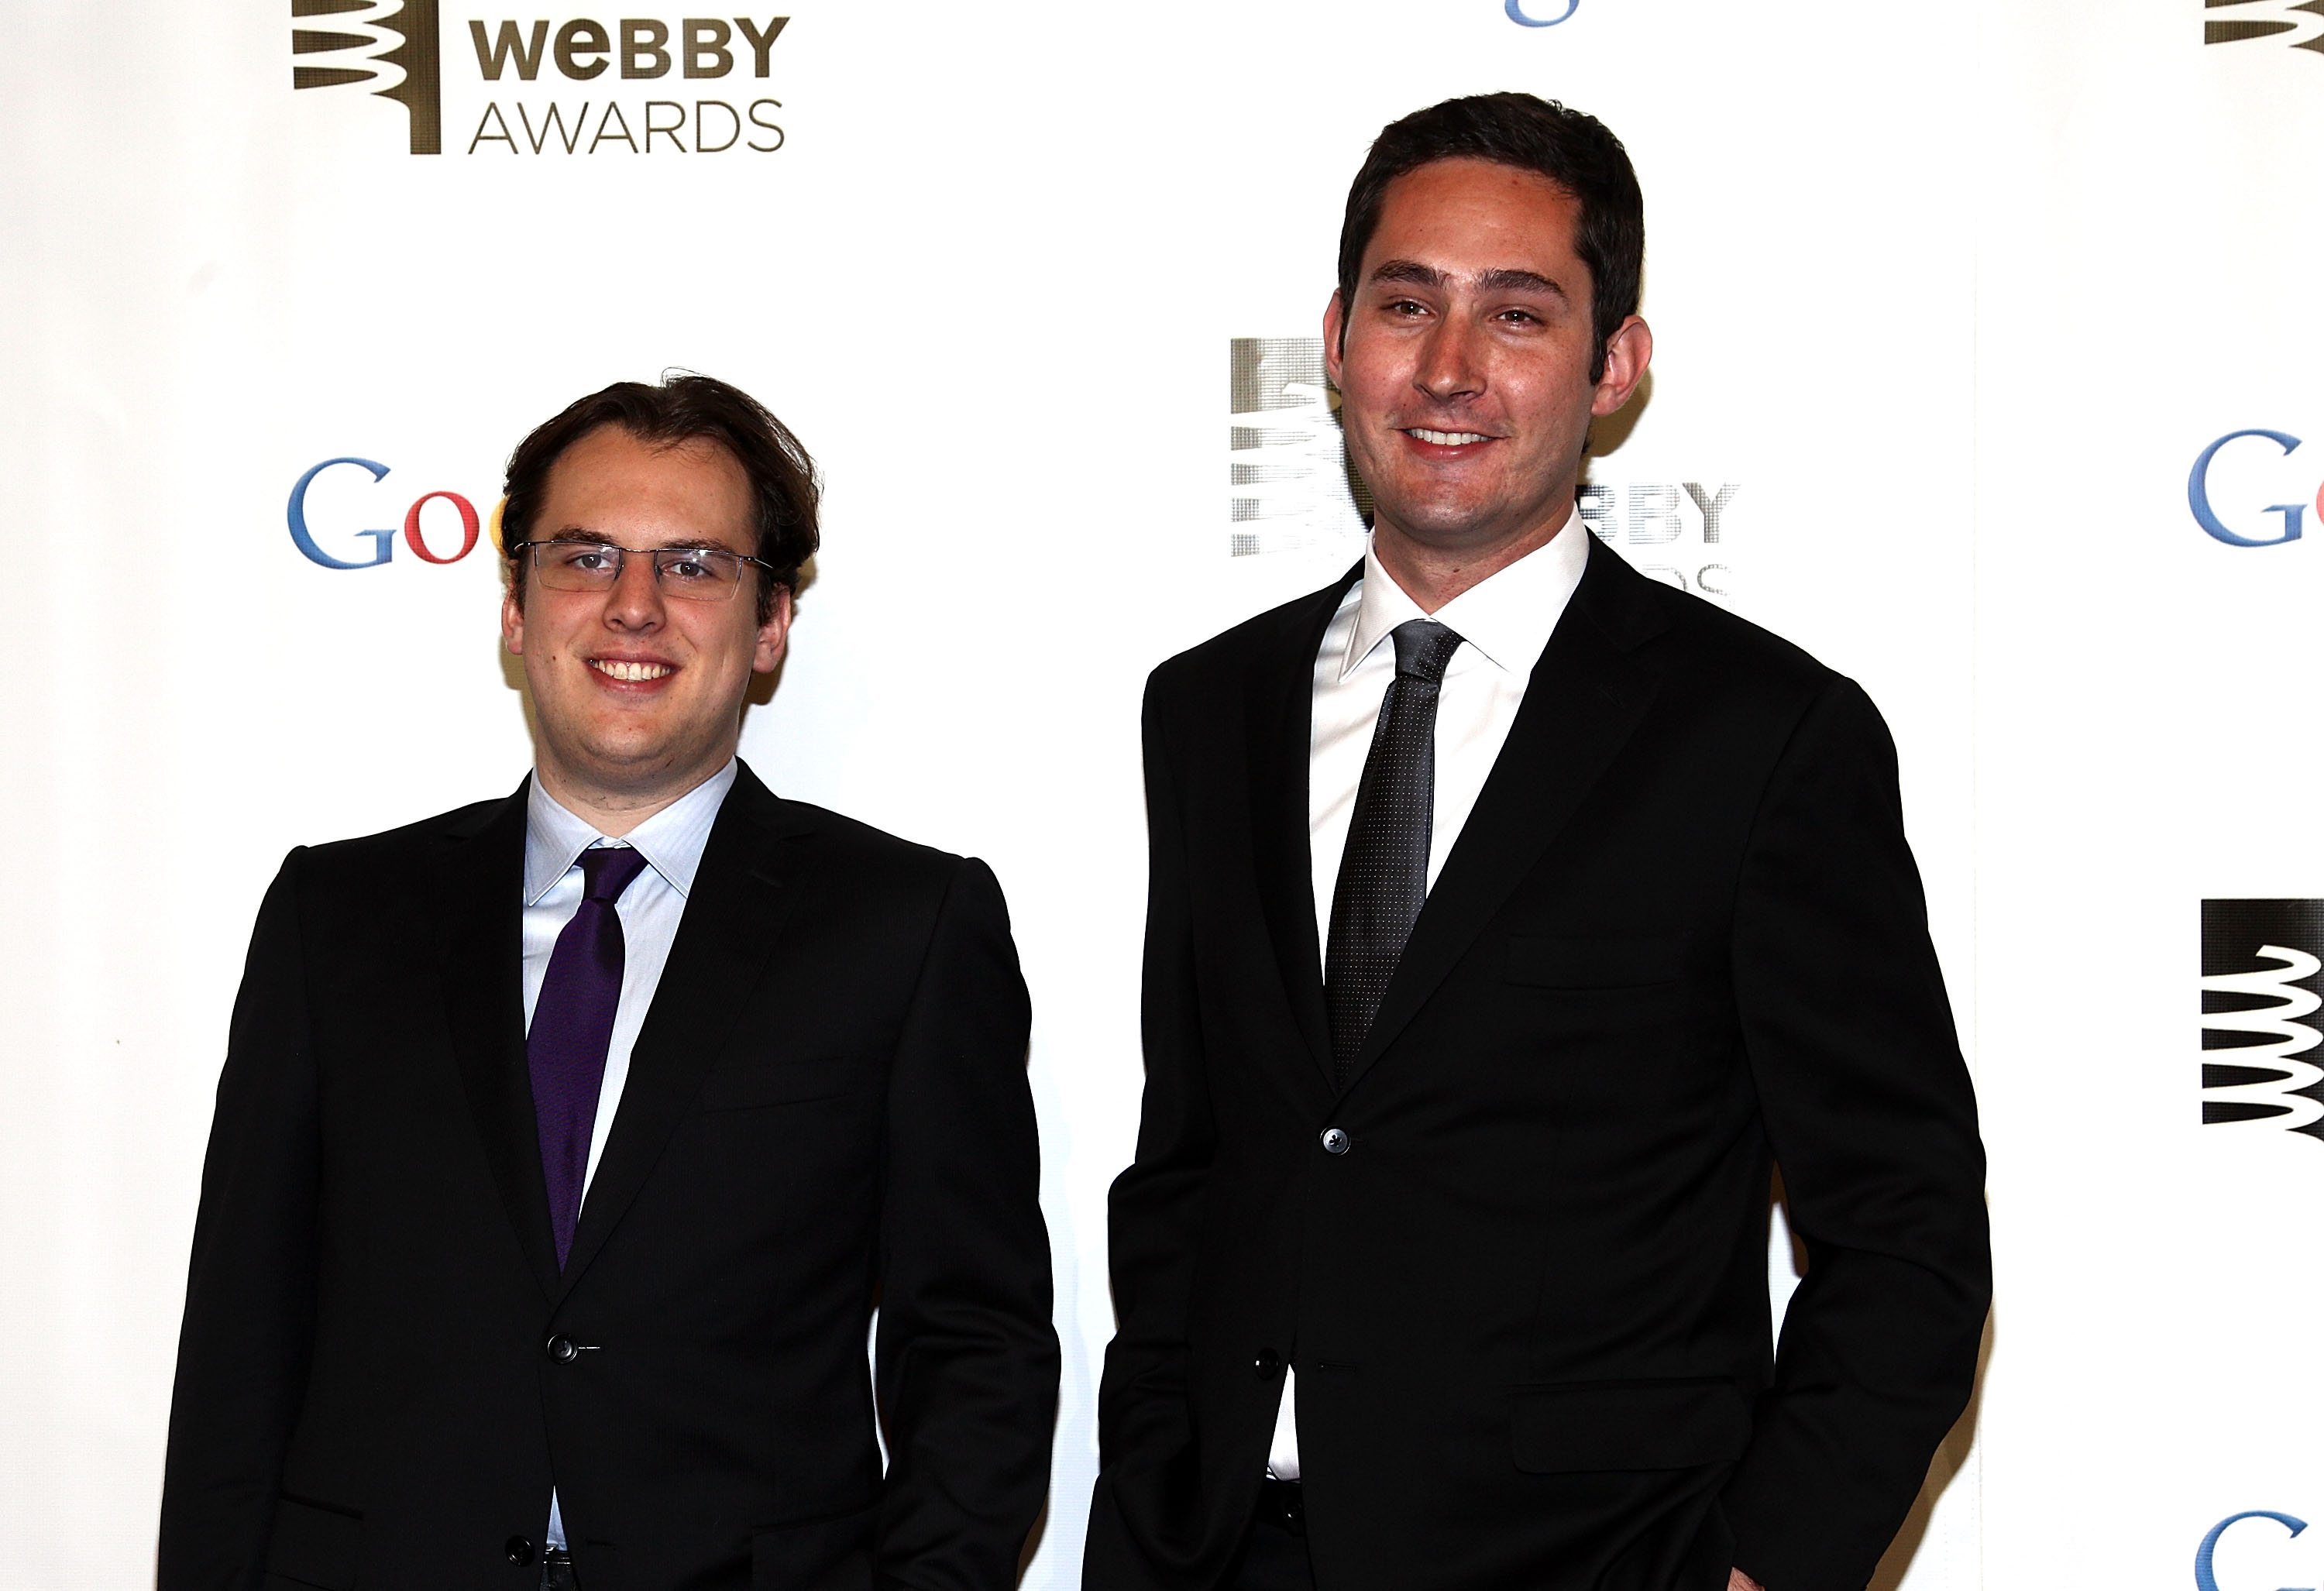 Instagram co-founders Mike Krieger and Kevin Systrom